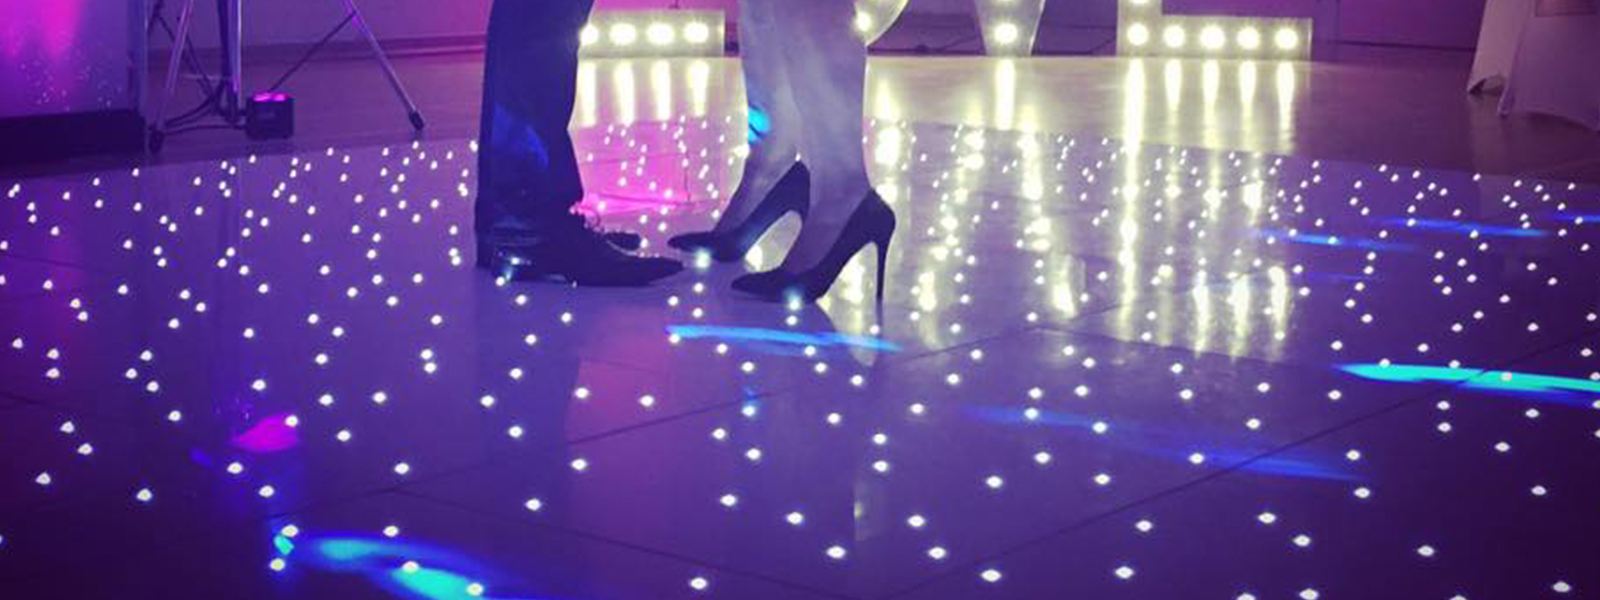 Starlit Dance Floors